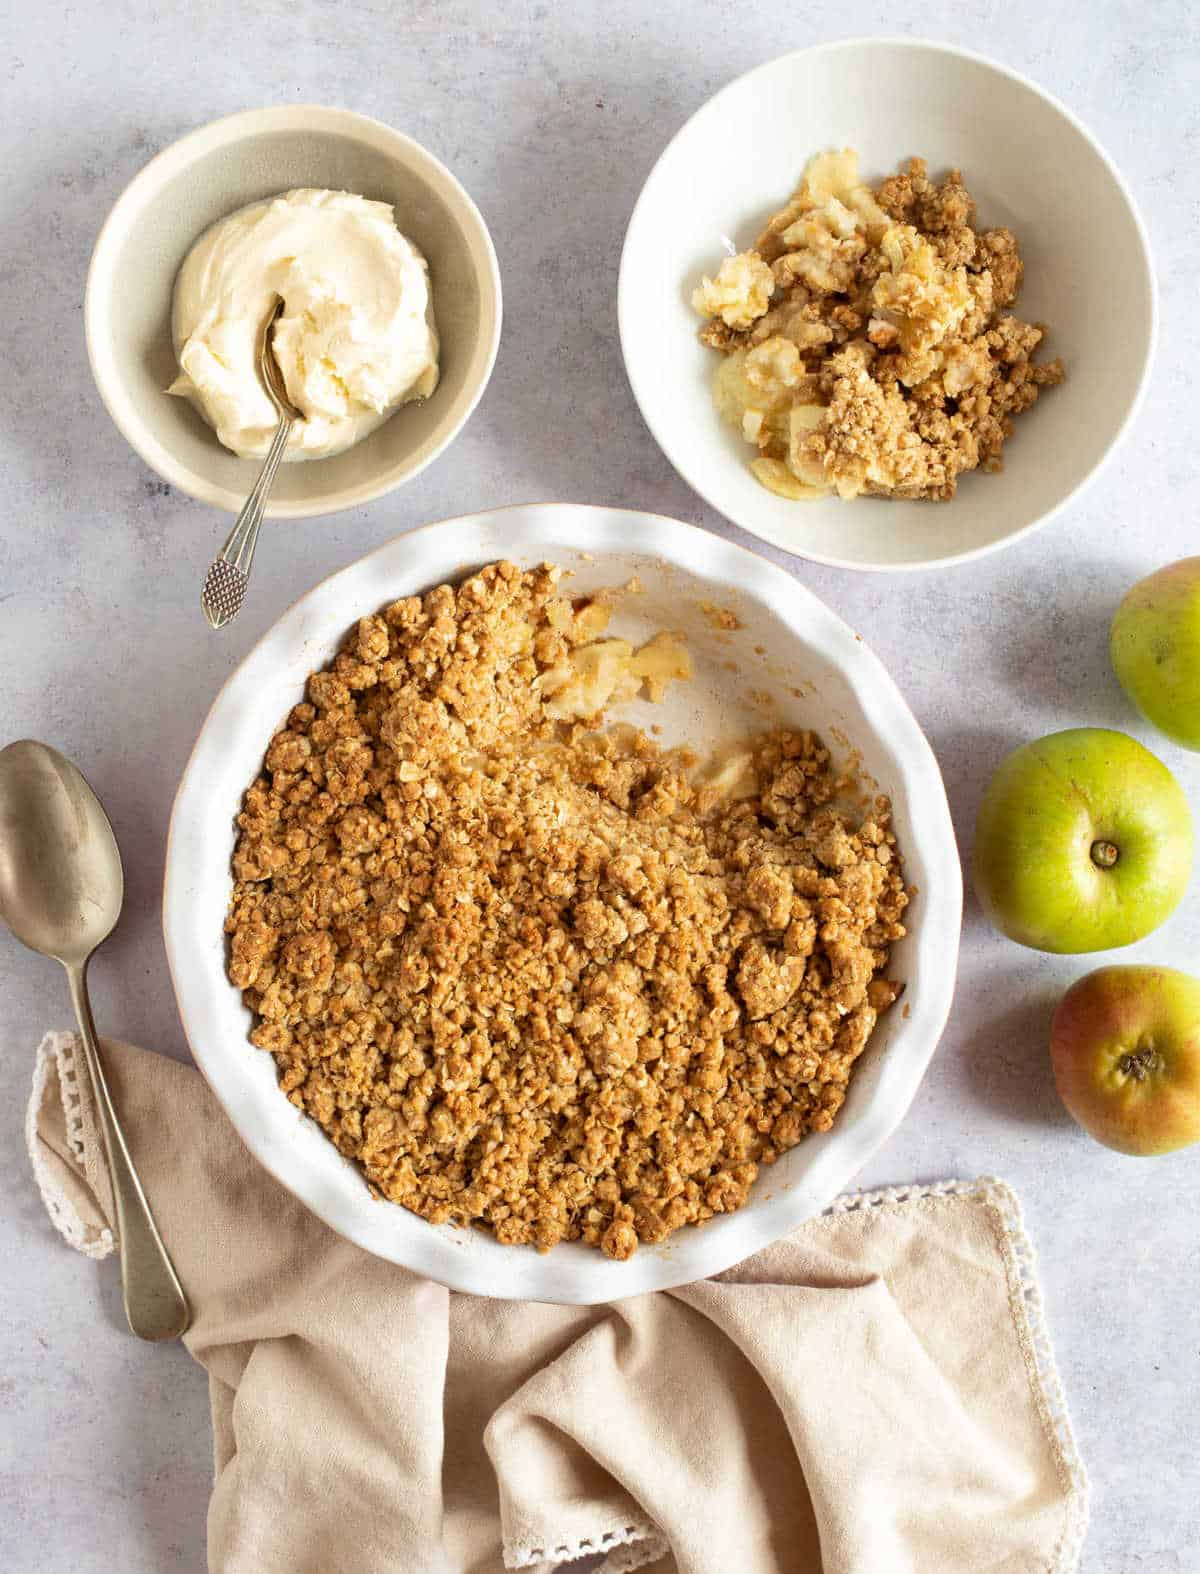 Easy cinnamon apple crumble in a red pie dish with whipped cream.